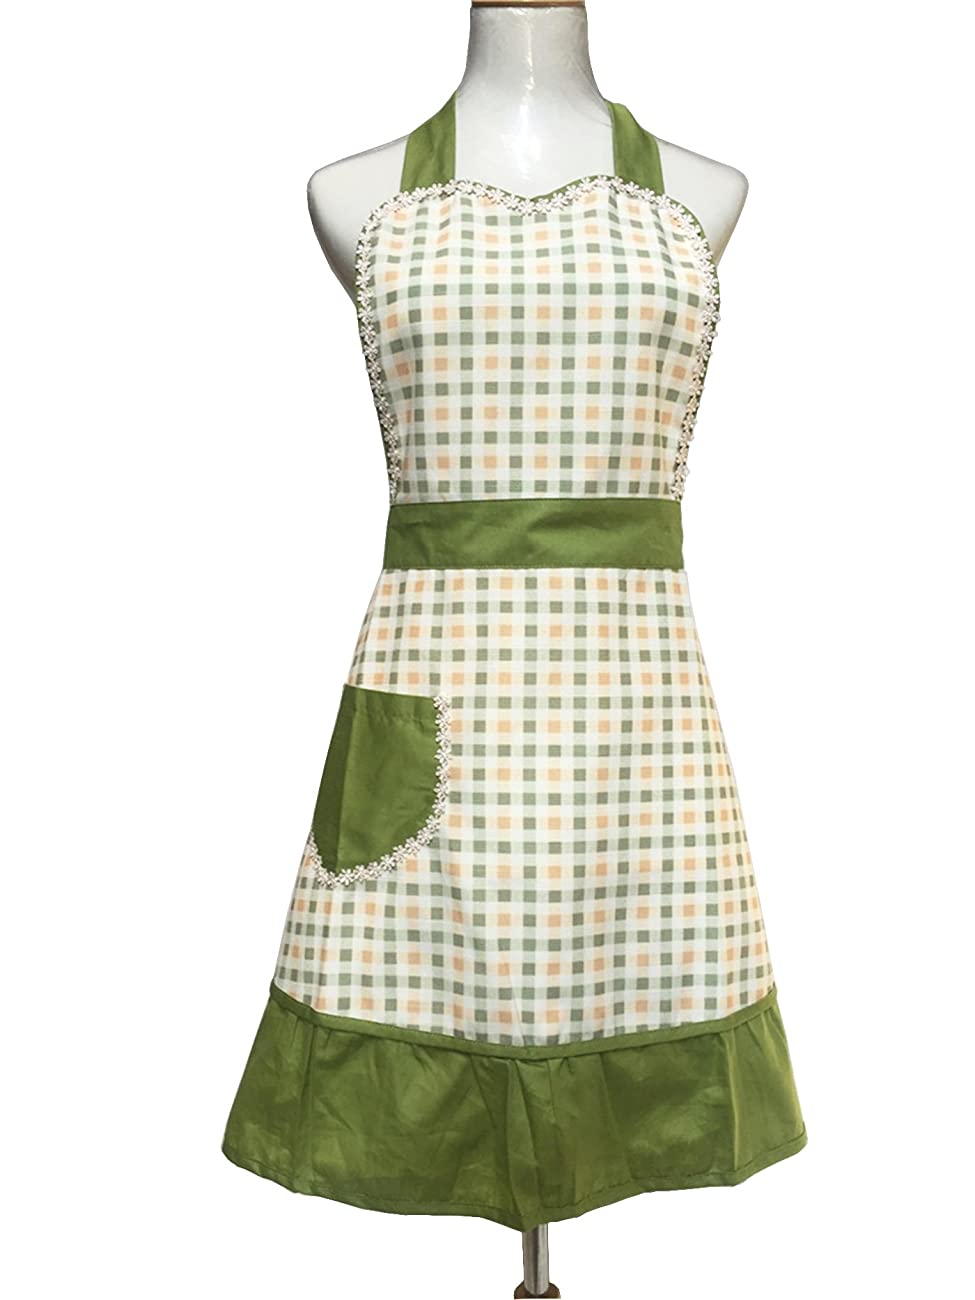 Lovely Sweetheart Retro Kitchen Aprons Woman Girl Cotton Cooking Salon Pinafore Vintage Apron Dress with Pocket,Green 1